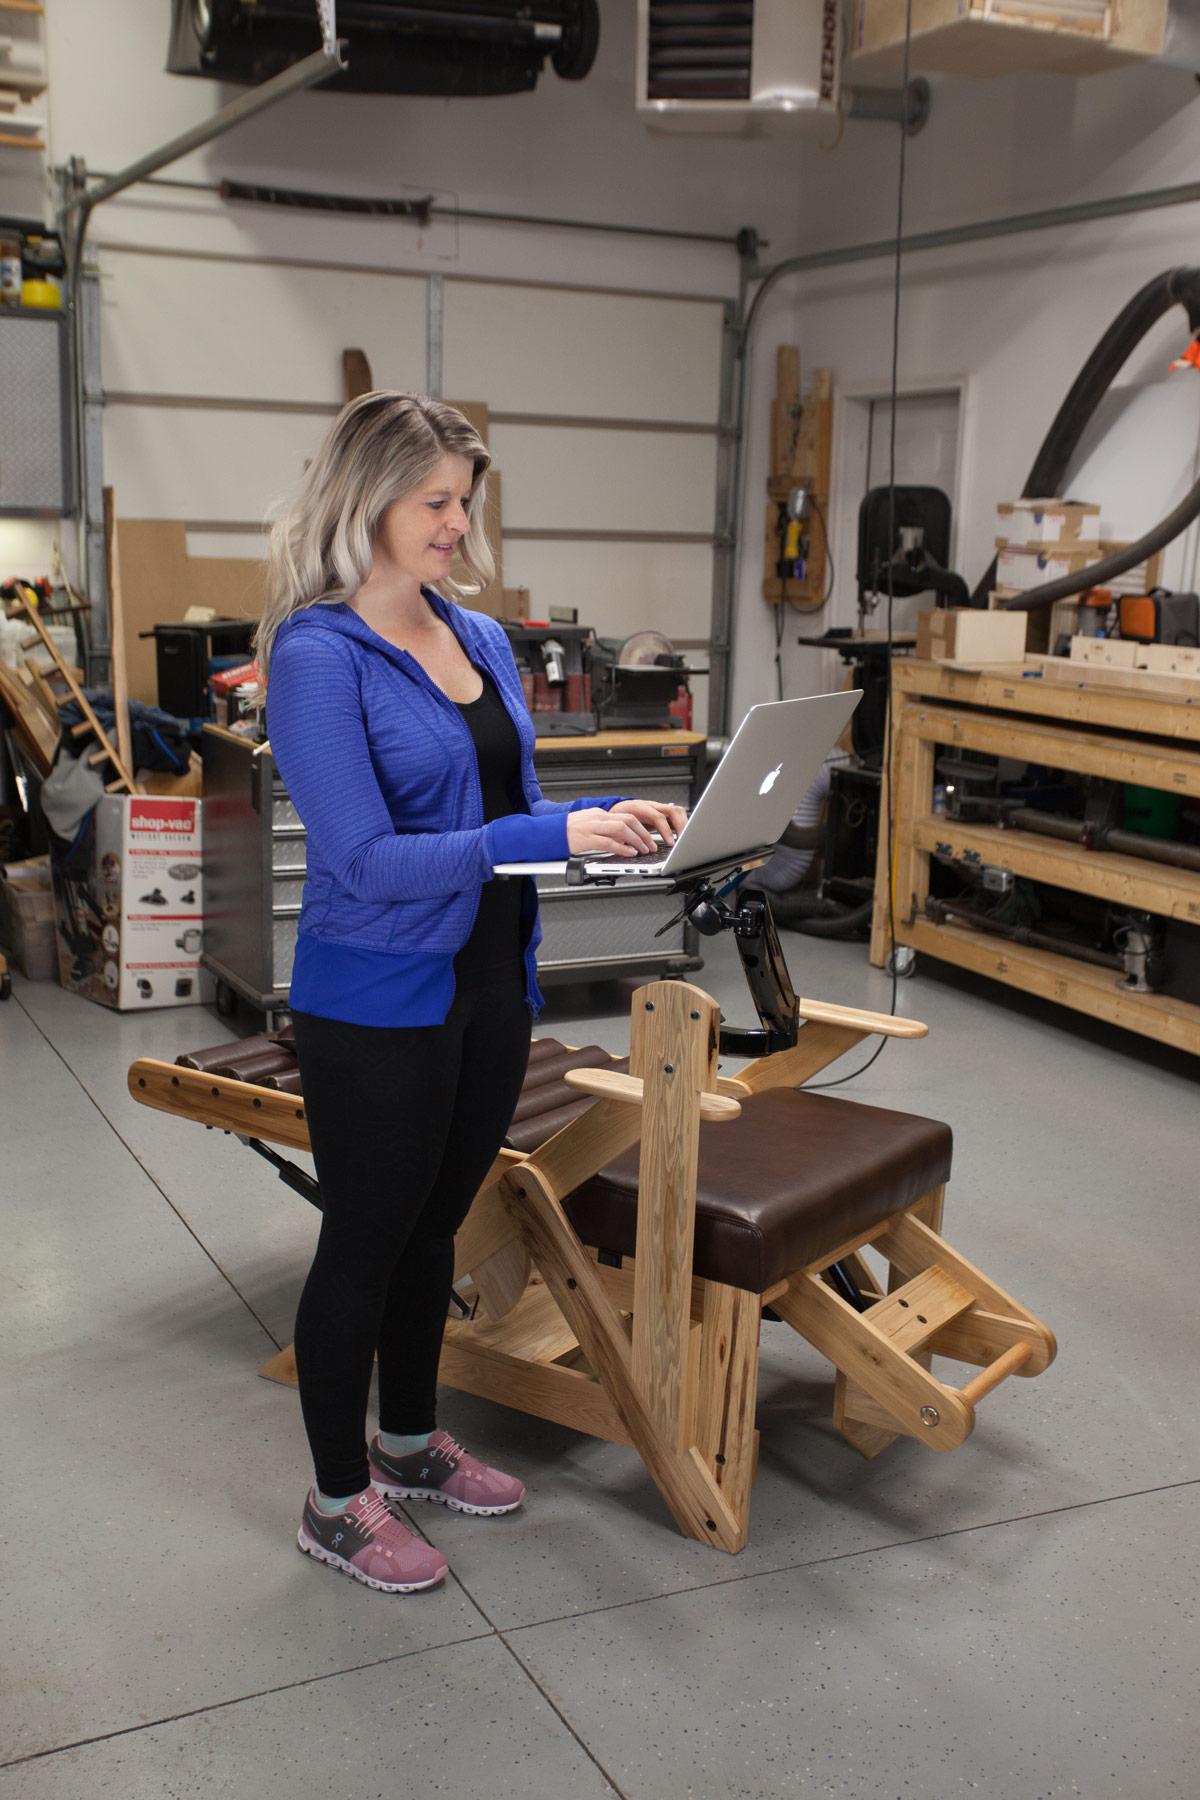 A woman standing and using a laptop computer with the inversion chair laptop arm attachment.